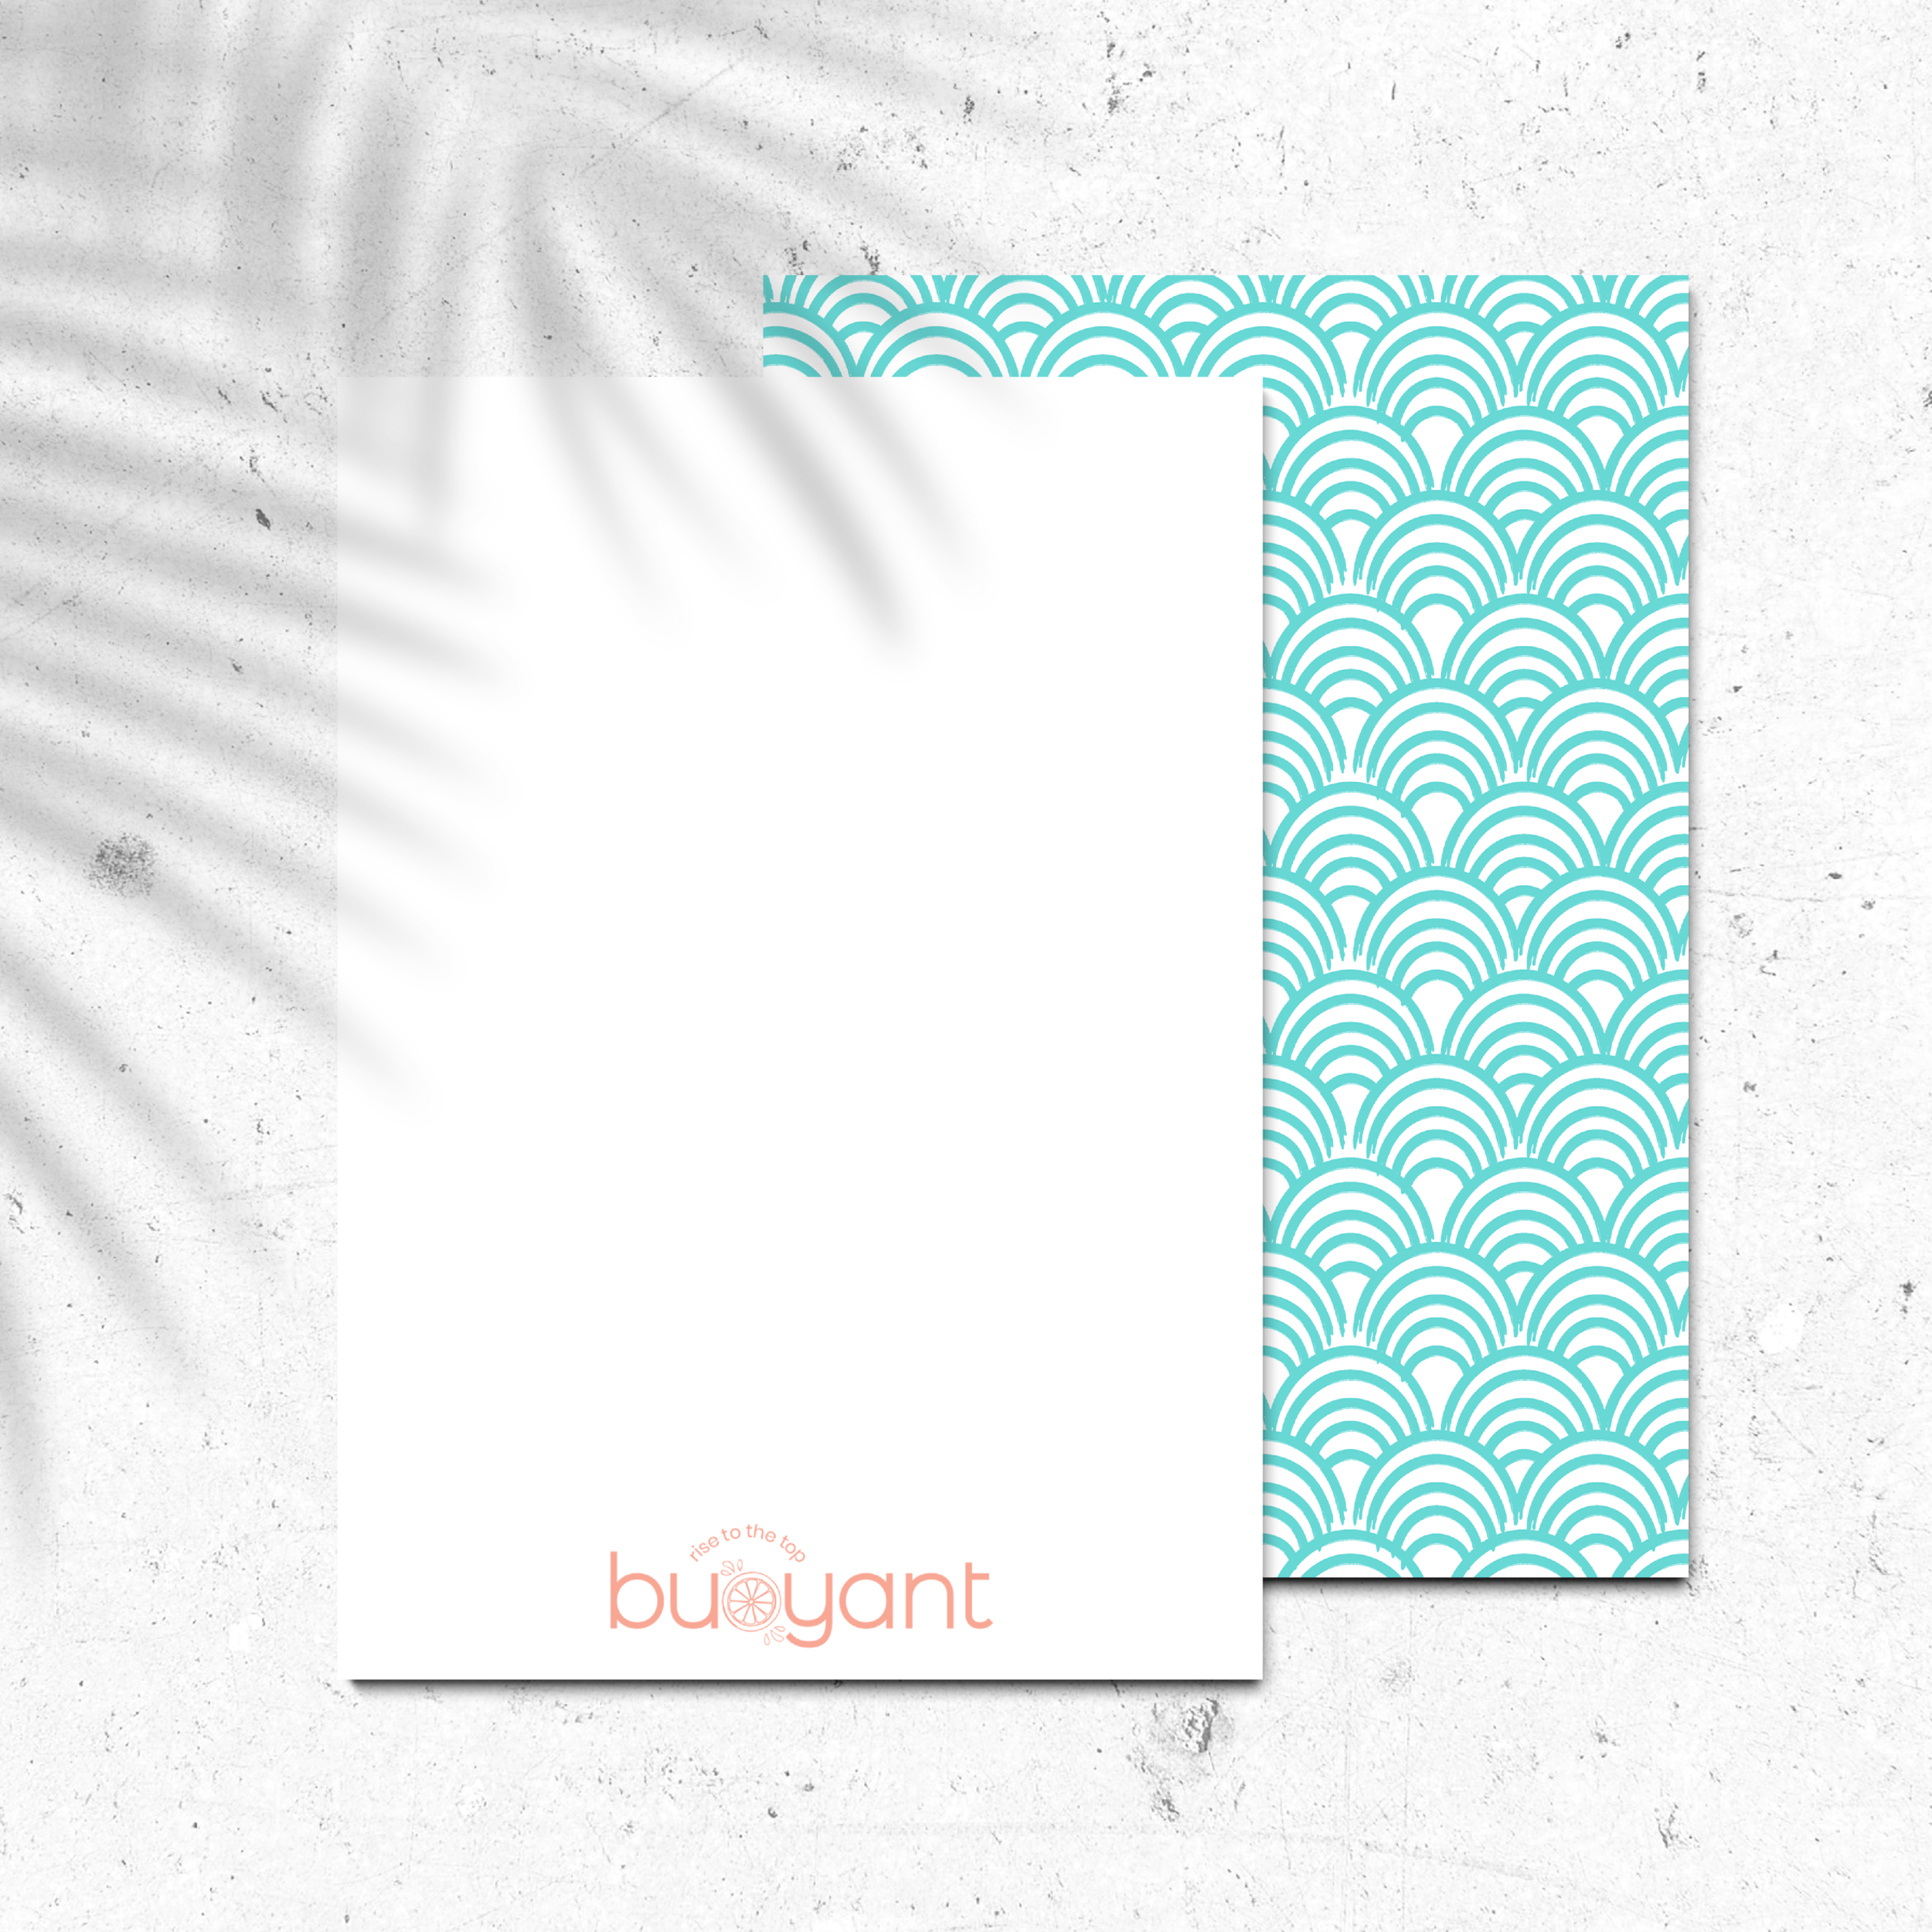 Buoyant Marketing Inbound Marketing Agency Florida Brand and Stationery Design by Kindly by Kelsea